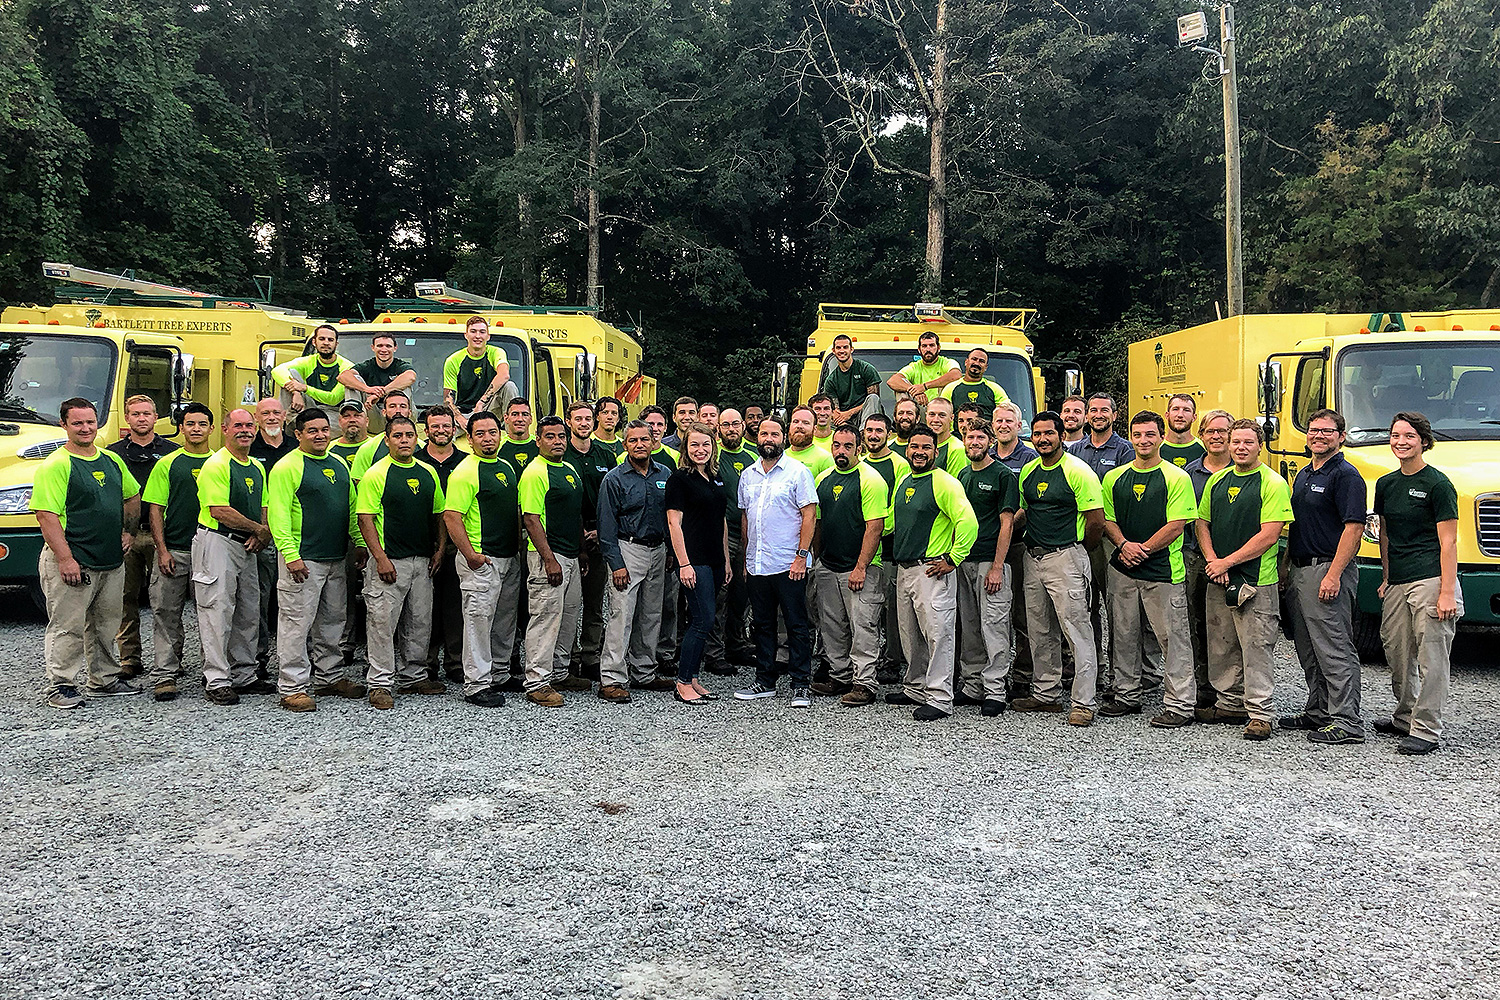 Bartlett Tree Experts: Tree Service and Shrub Care in